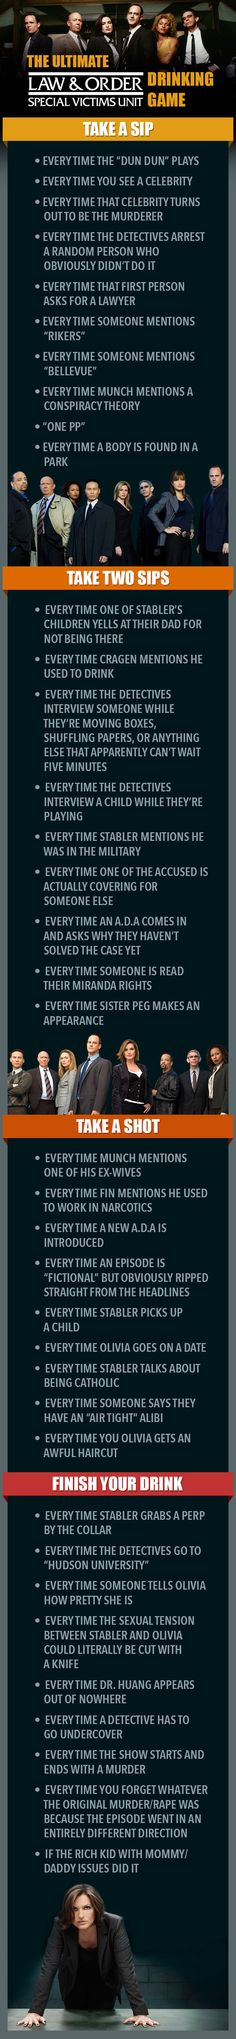 """The Ultimate """"Law & Order: SVU"""" Drinking Game. Say goodbye to your liver."""